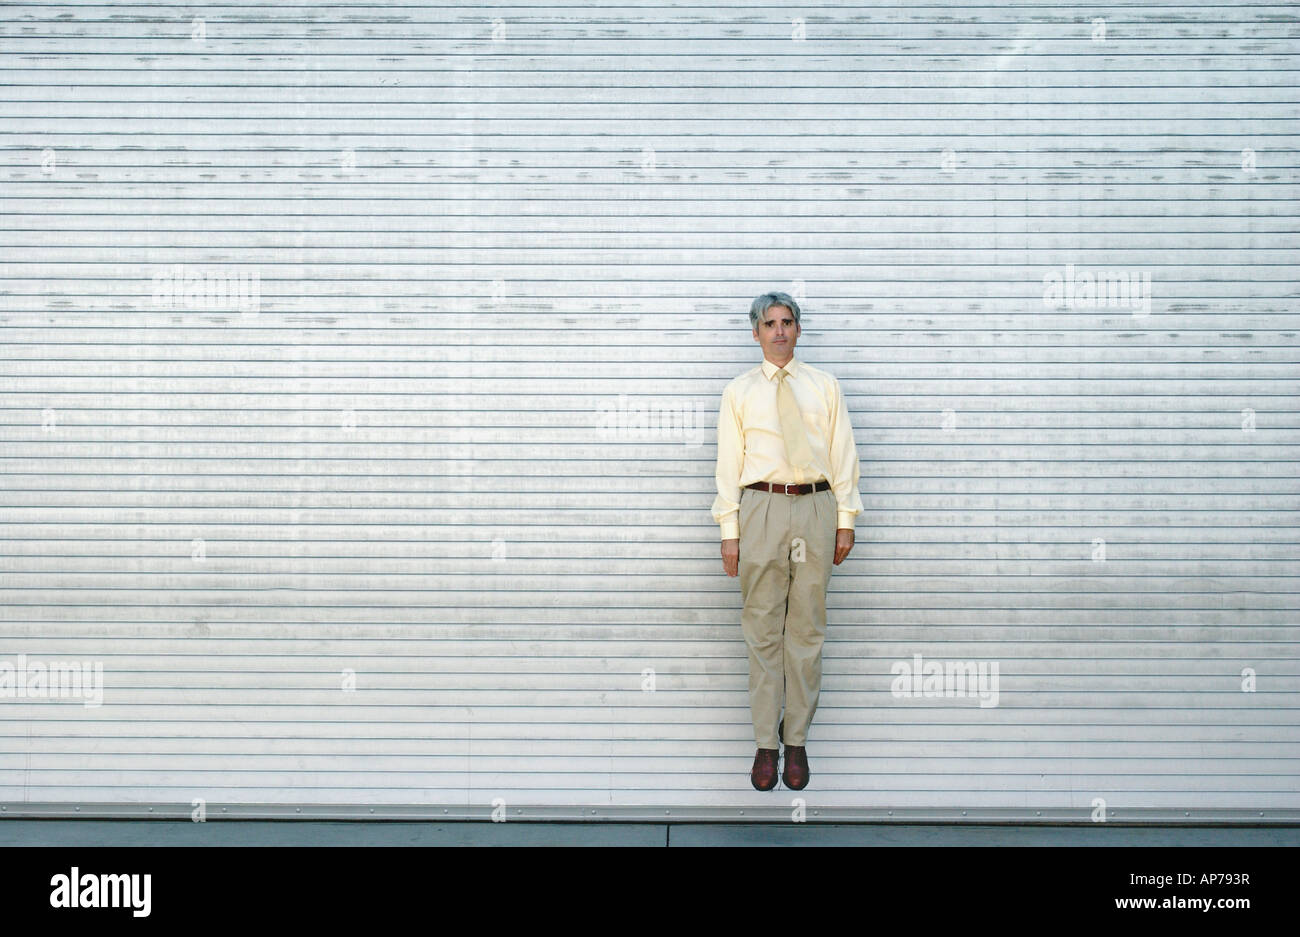 caucasian man jumps in the air with arms at sides next to a gray wall - Stock Image